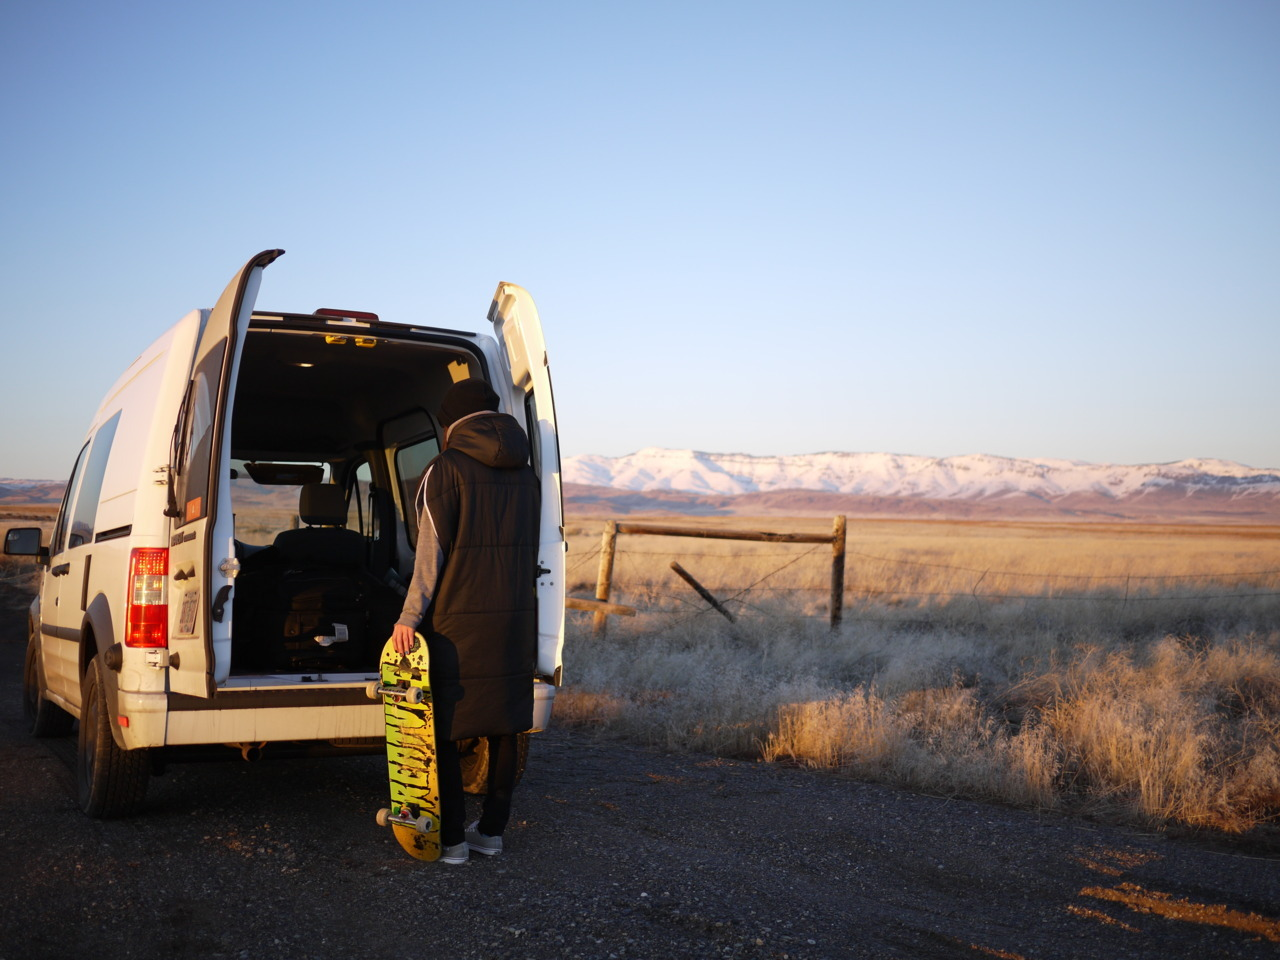 Sunday, February 5 2012 Photographer: Cory Grove Stretch the legs. #vanlife